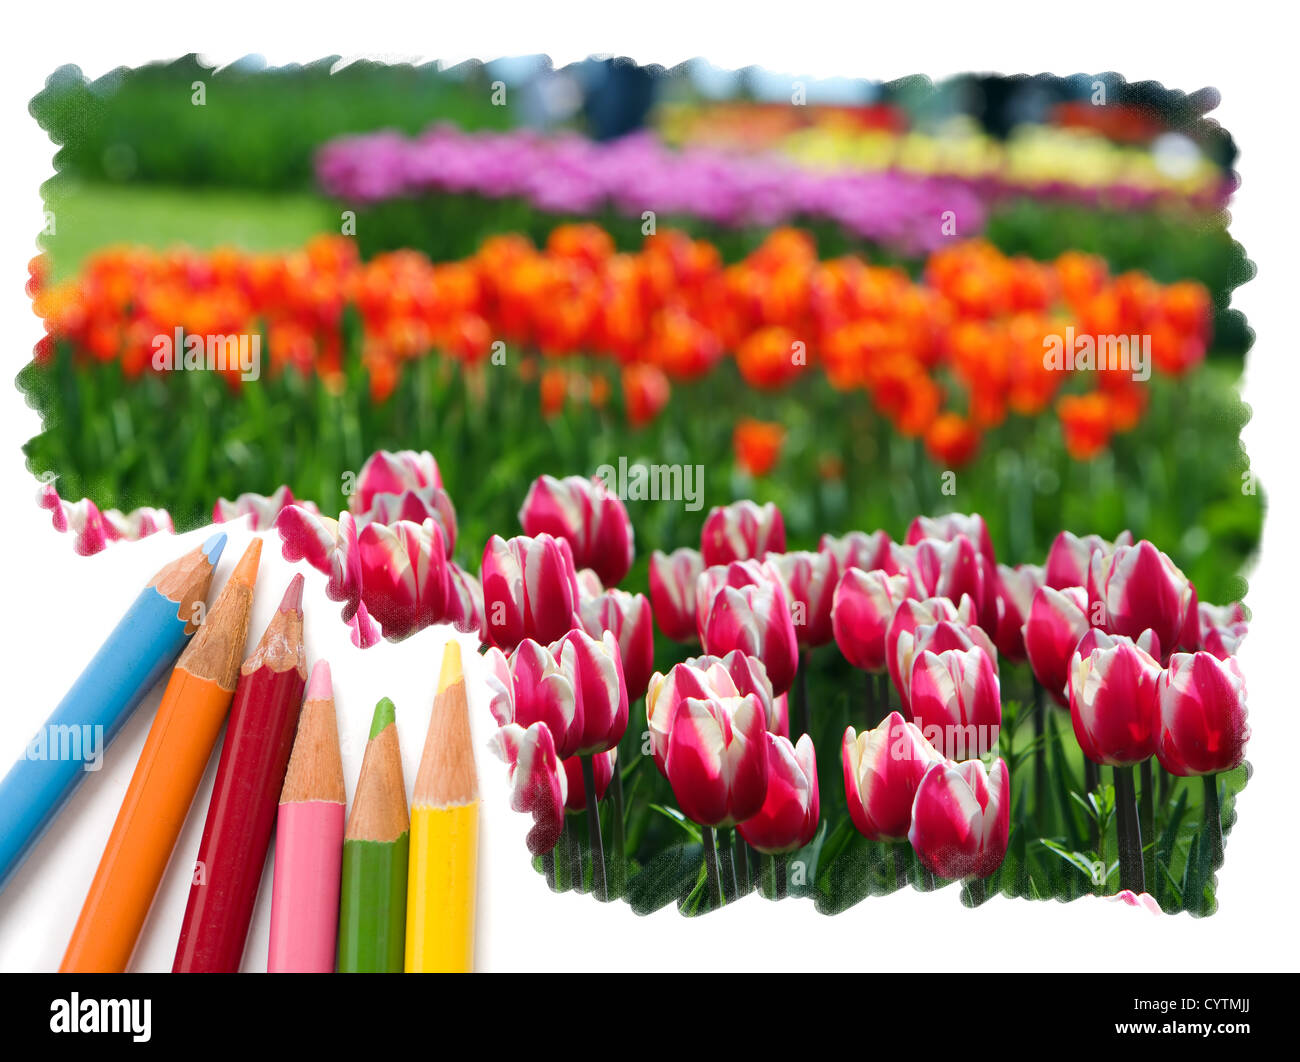 Pencil Drawing Flowers Stock Photos & Pencil Drawing Flowers Stock ...